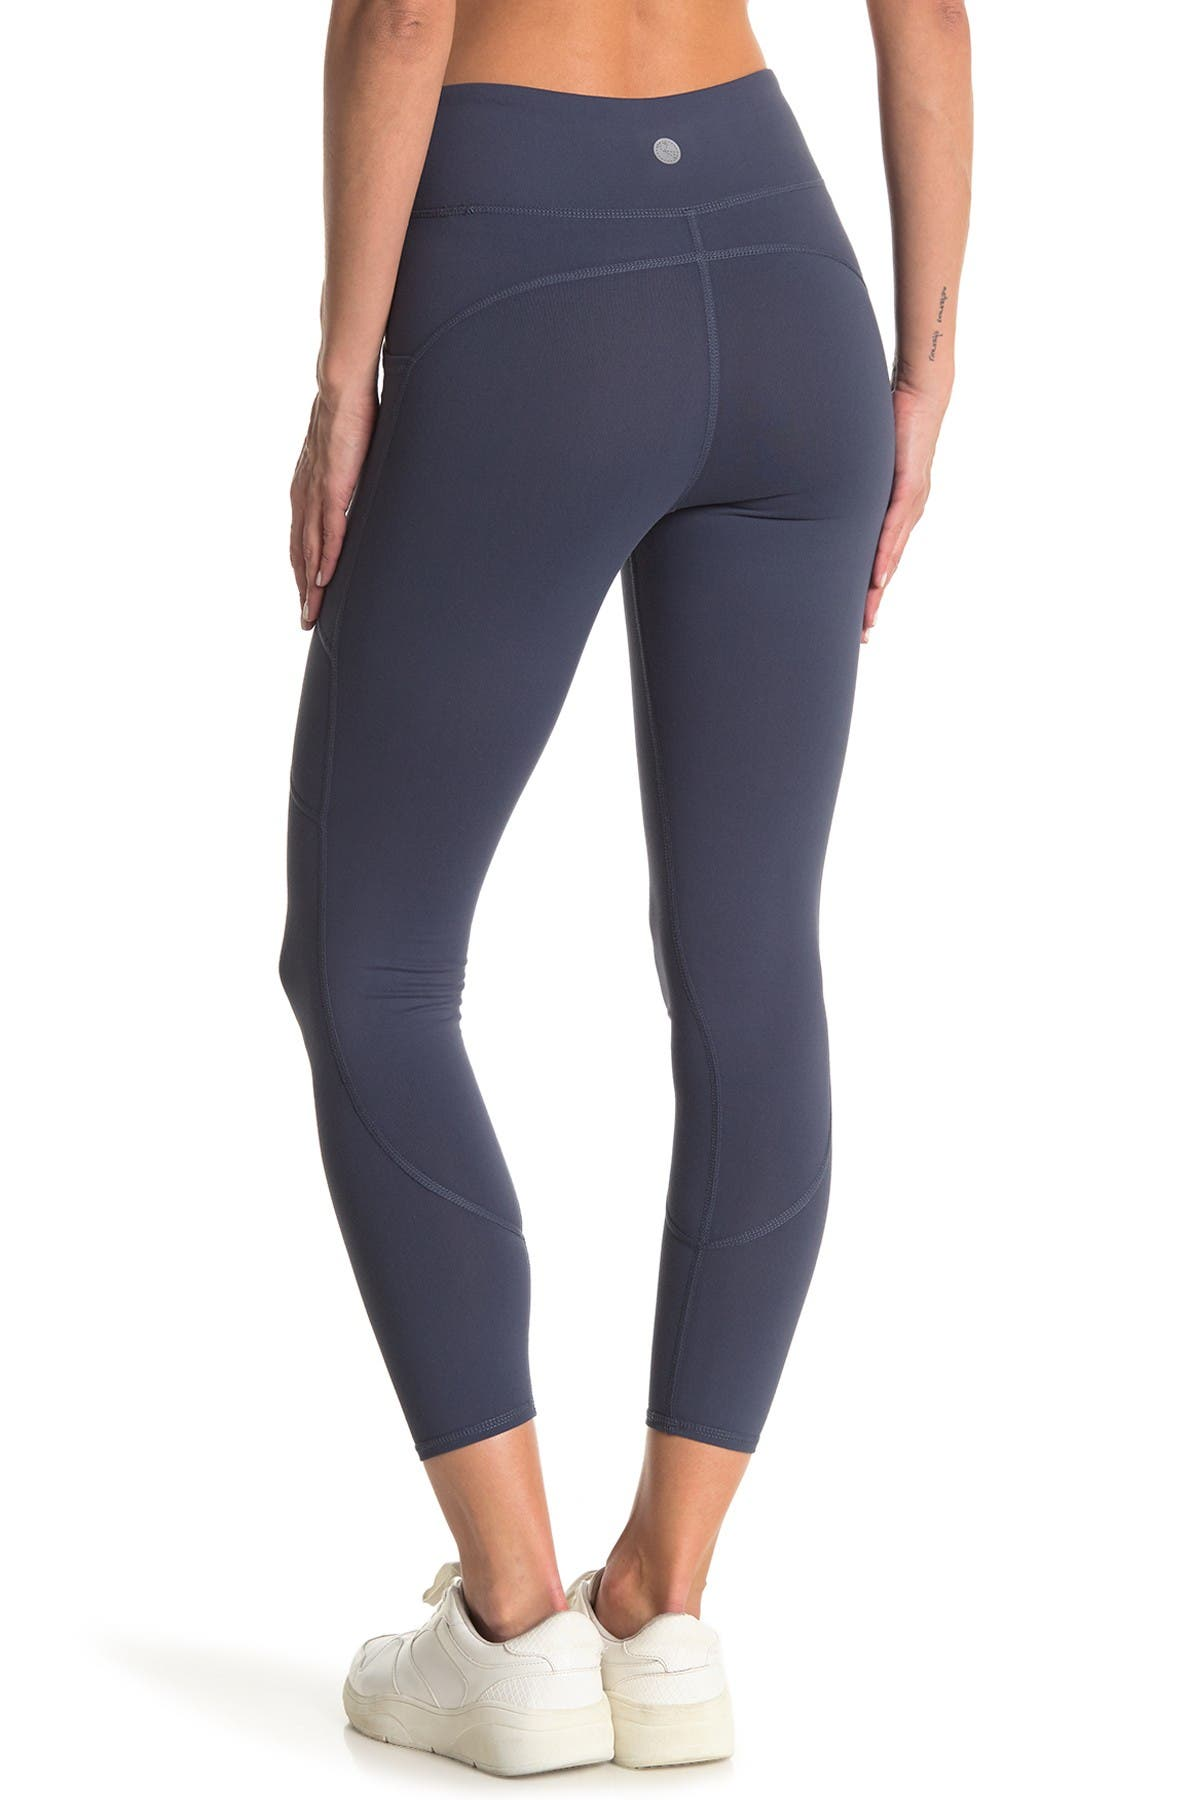 Image of Threads 4 Thought Maelys Leggings